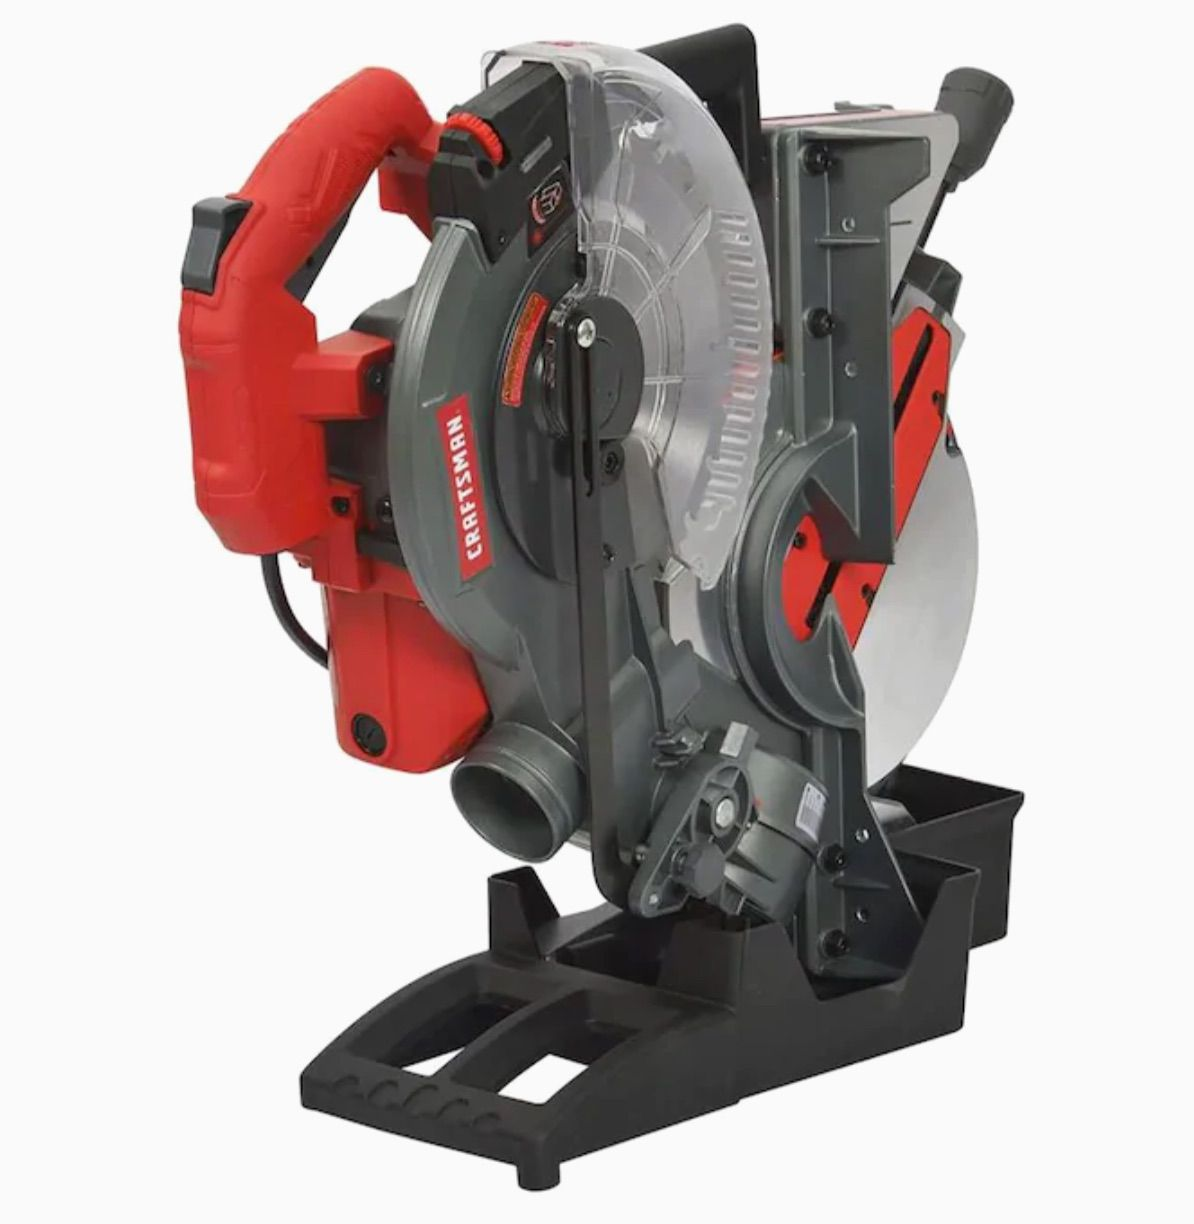 Craftsman 10-in 15-Amp Single Bevel Folding Compound Corded Miter Saw